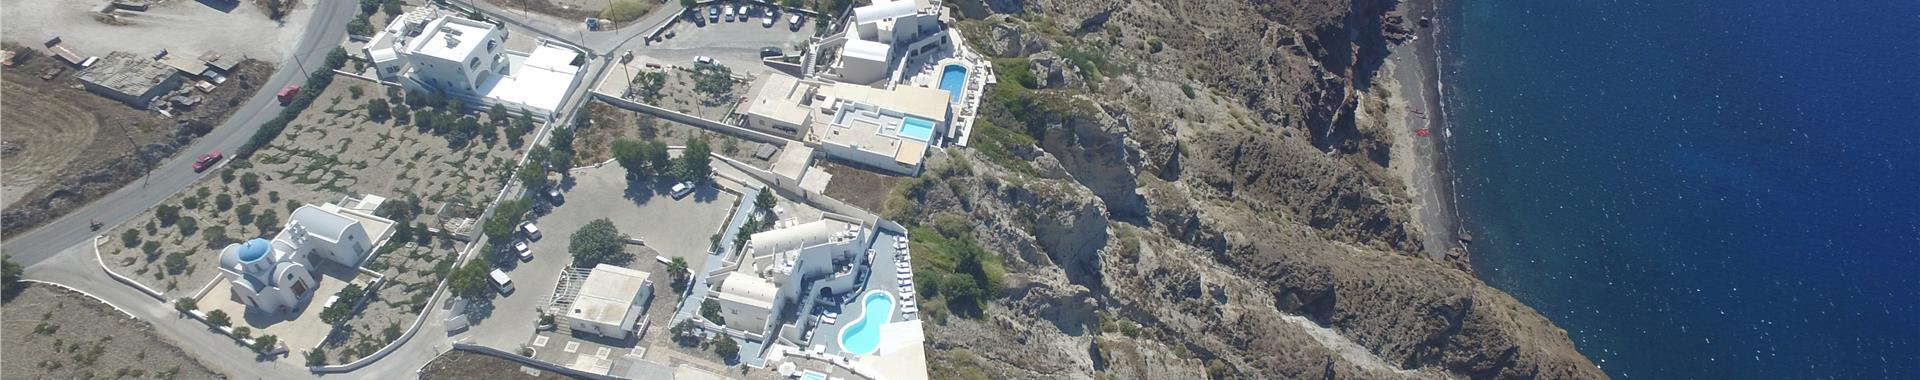 Megalochori Megalochori Hotels in Santorini island, Greece